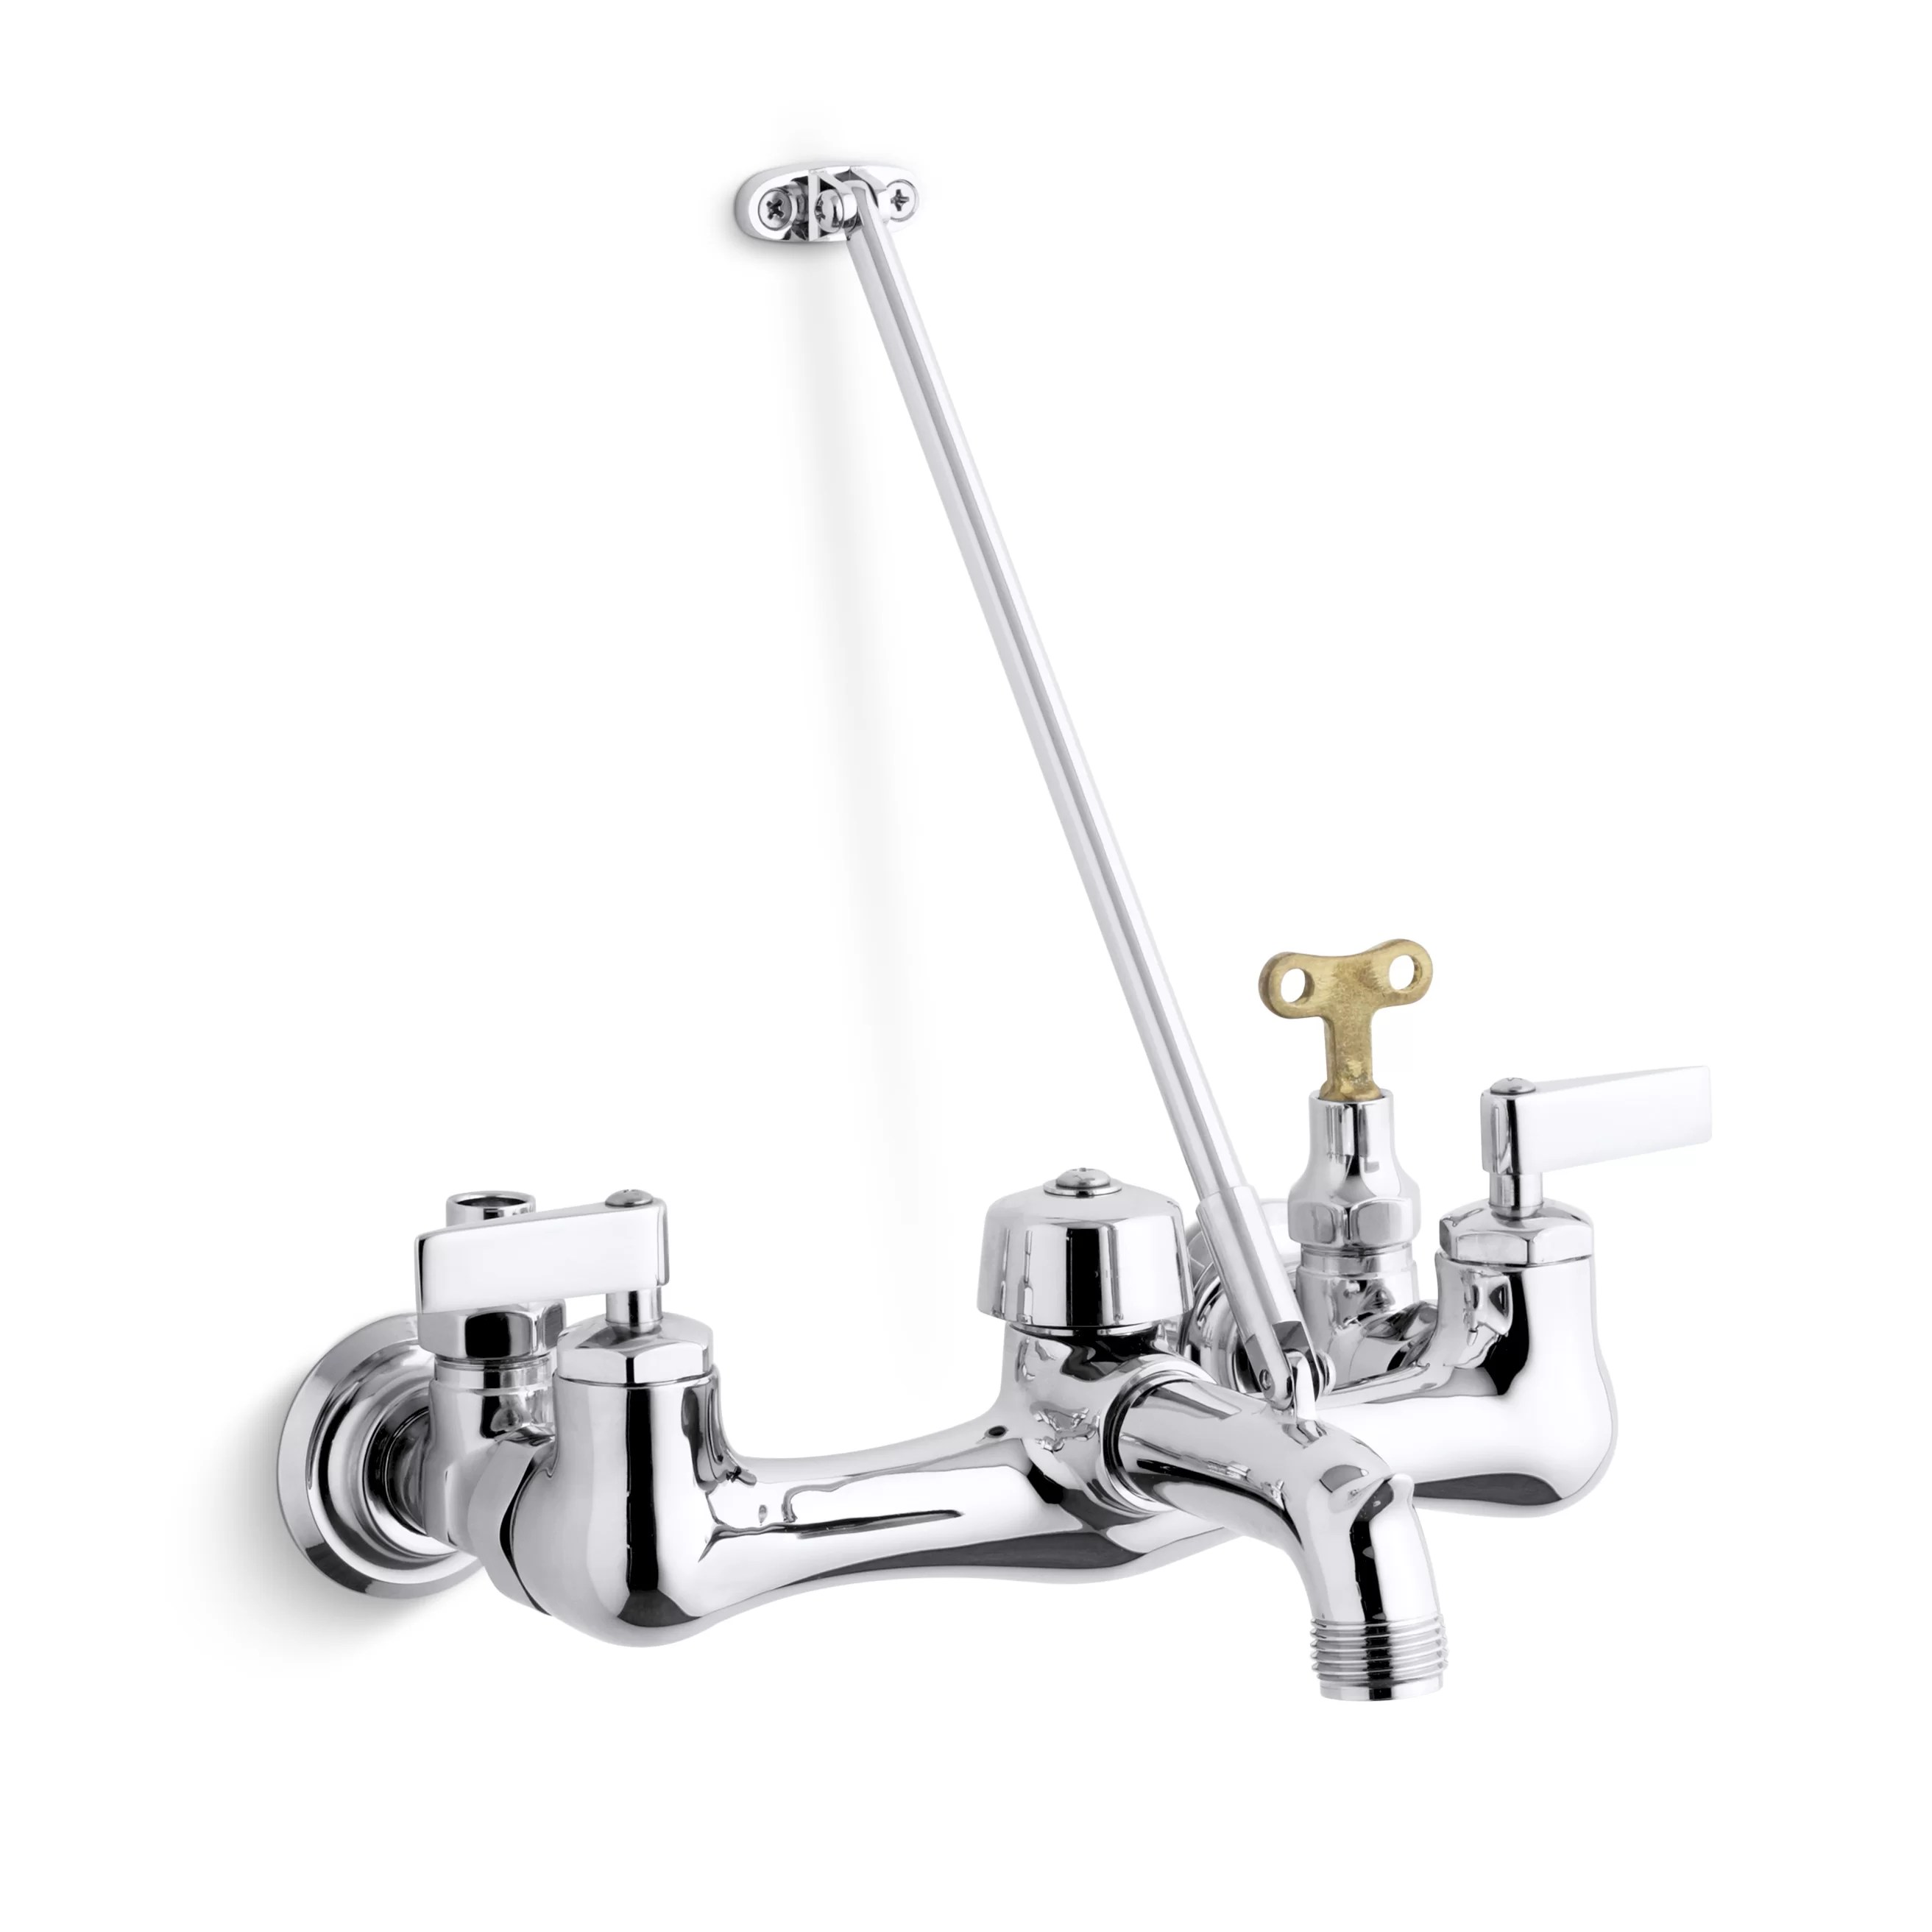 kinlock double lever handle service sink faucet with top mounted wall brace and loose key stops